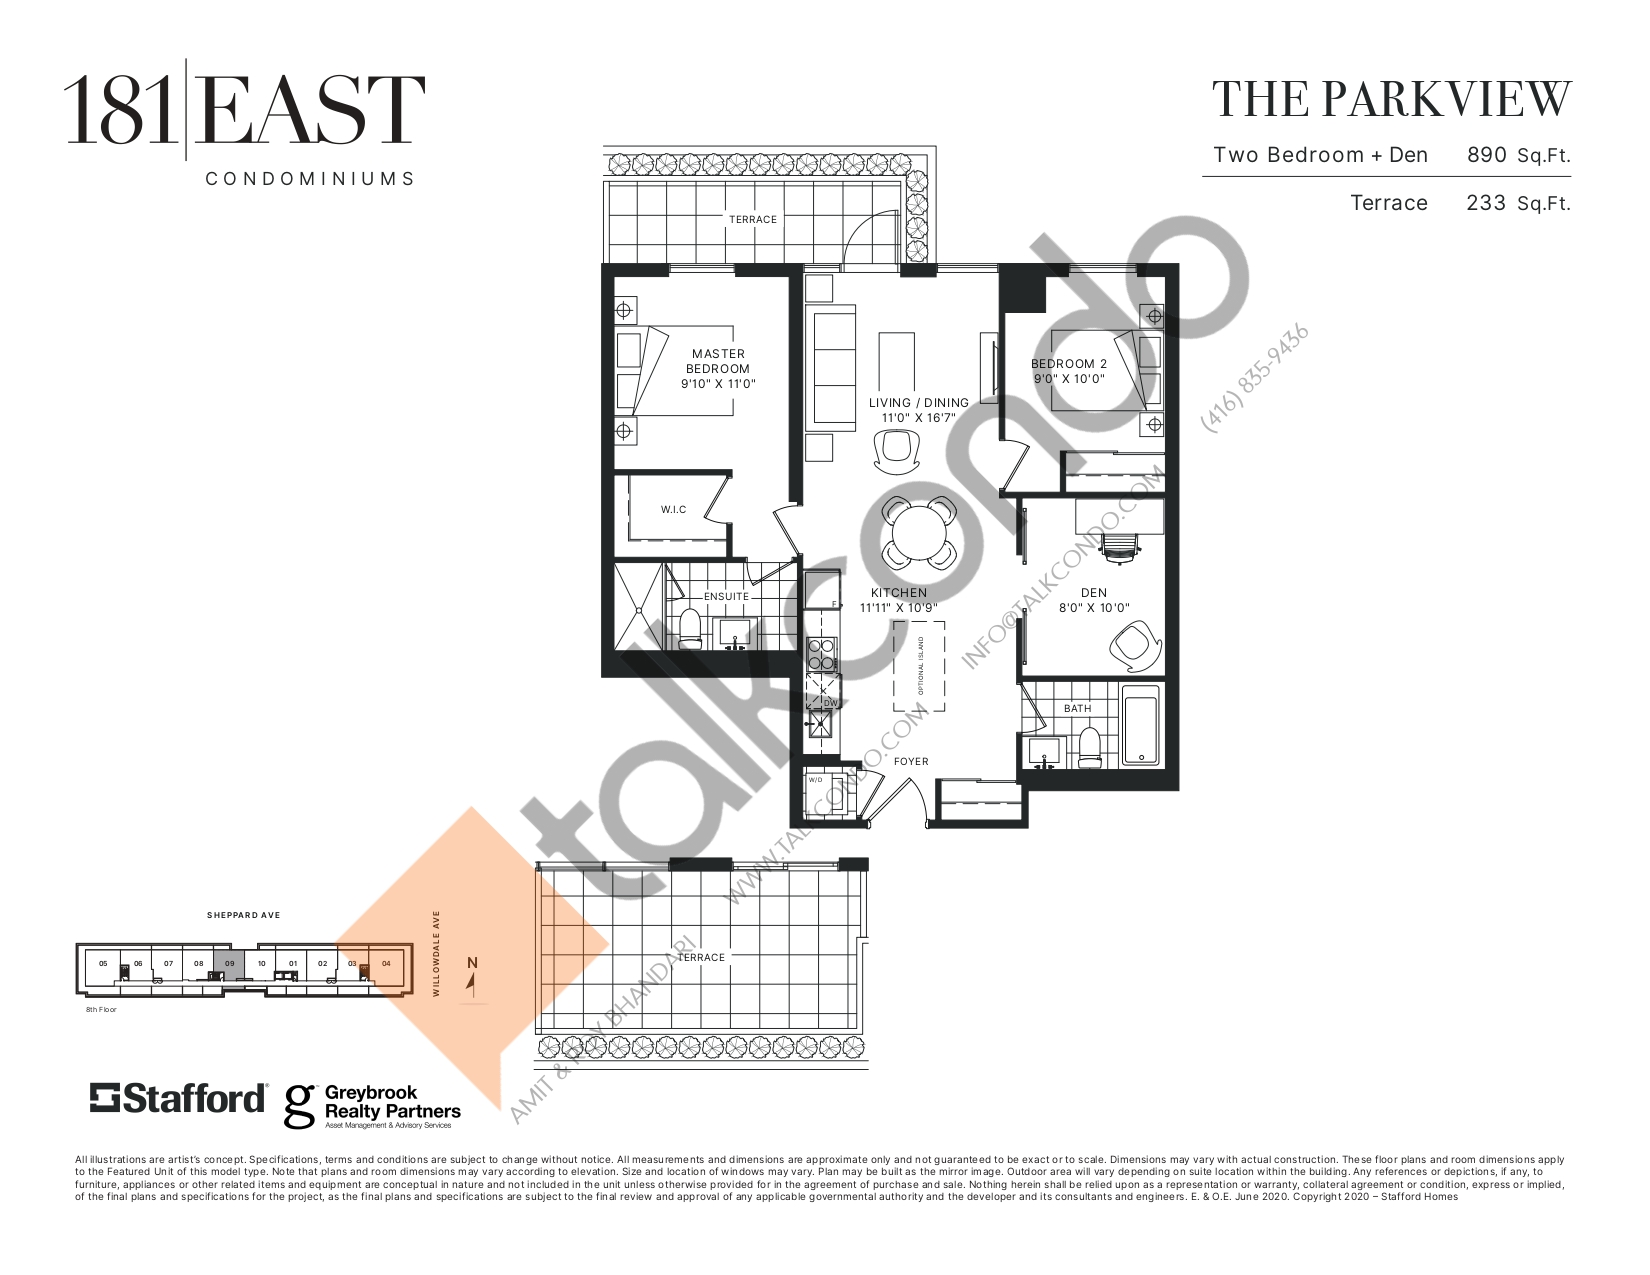 The Parkview Floor Plan at 181 East Condos - 890 sq.ft